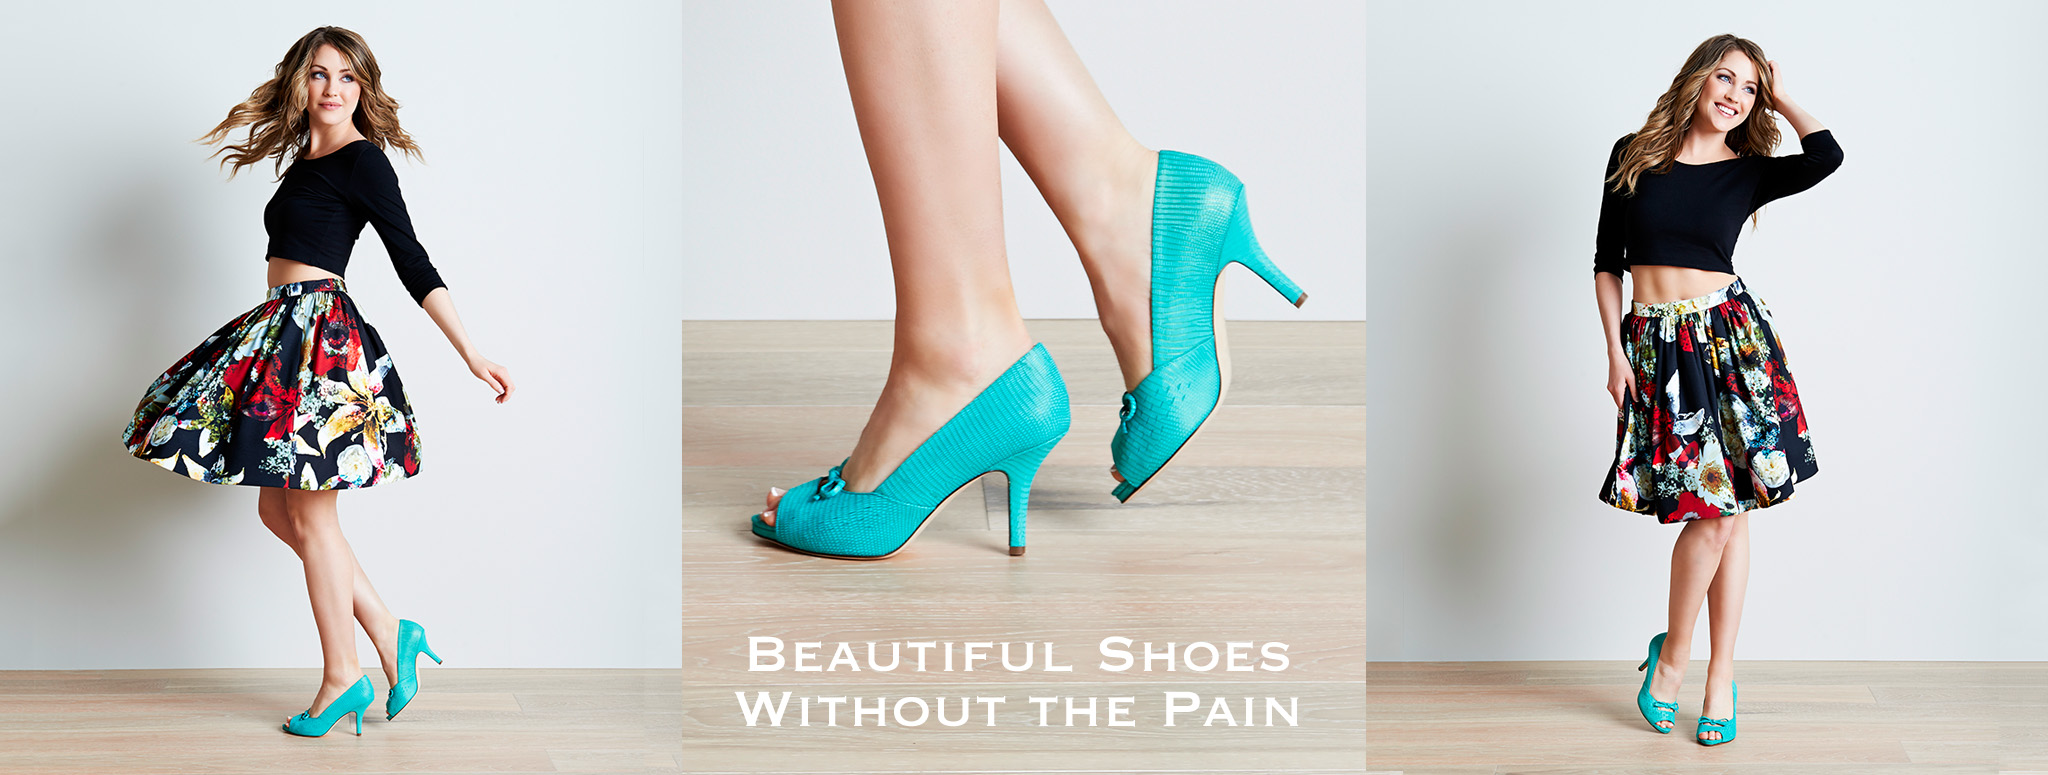 heels without the pain